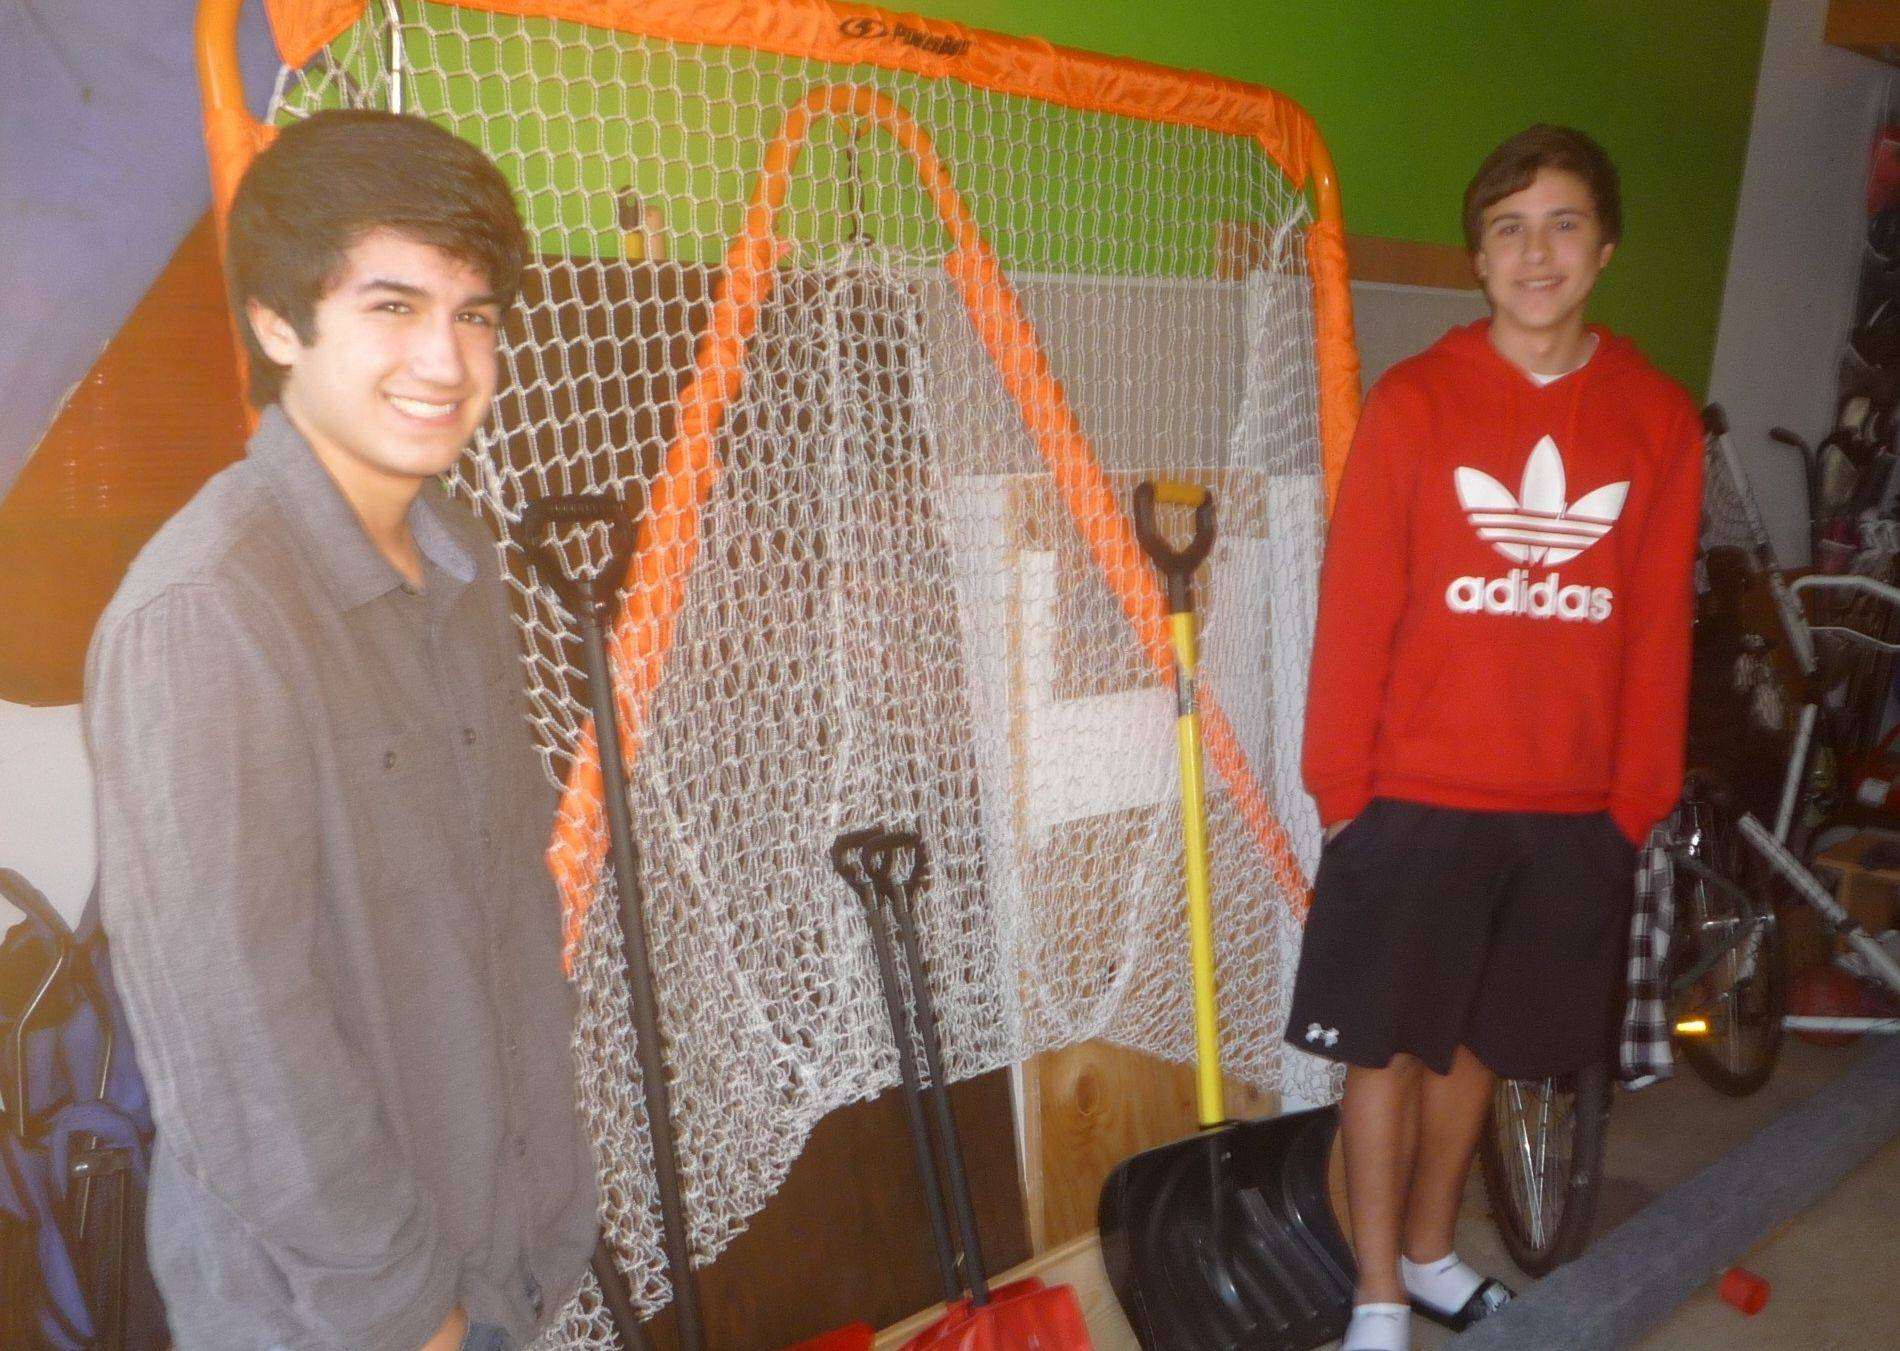 So far this winter, the lacrosse net has been more likely to see action than the snow shovels. This is bad news for The Shovel Boys business started by Sean Rooney, left, and Nick Pardo.